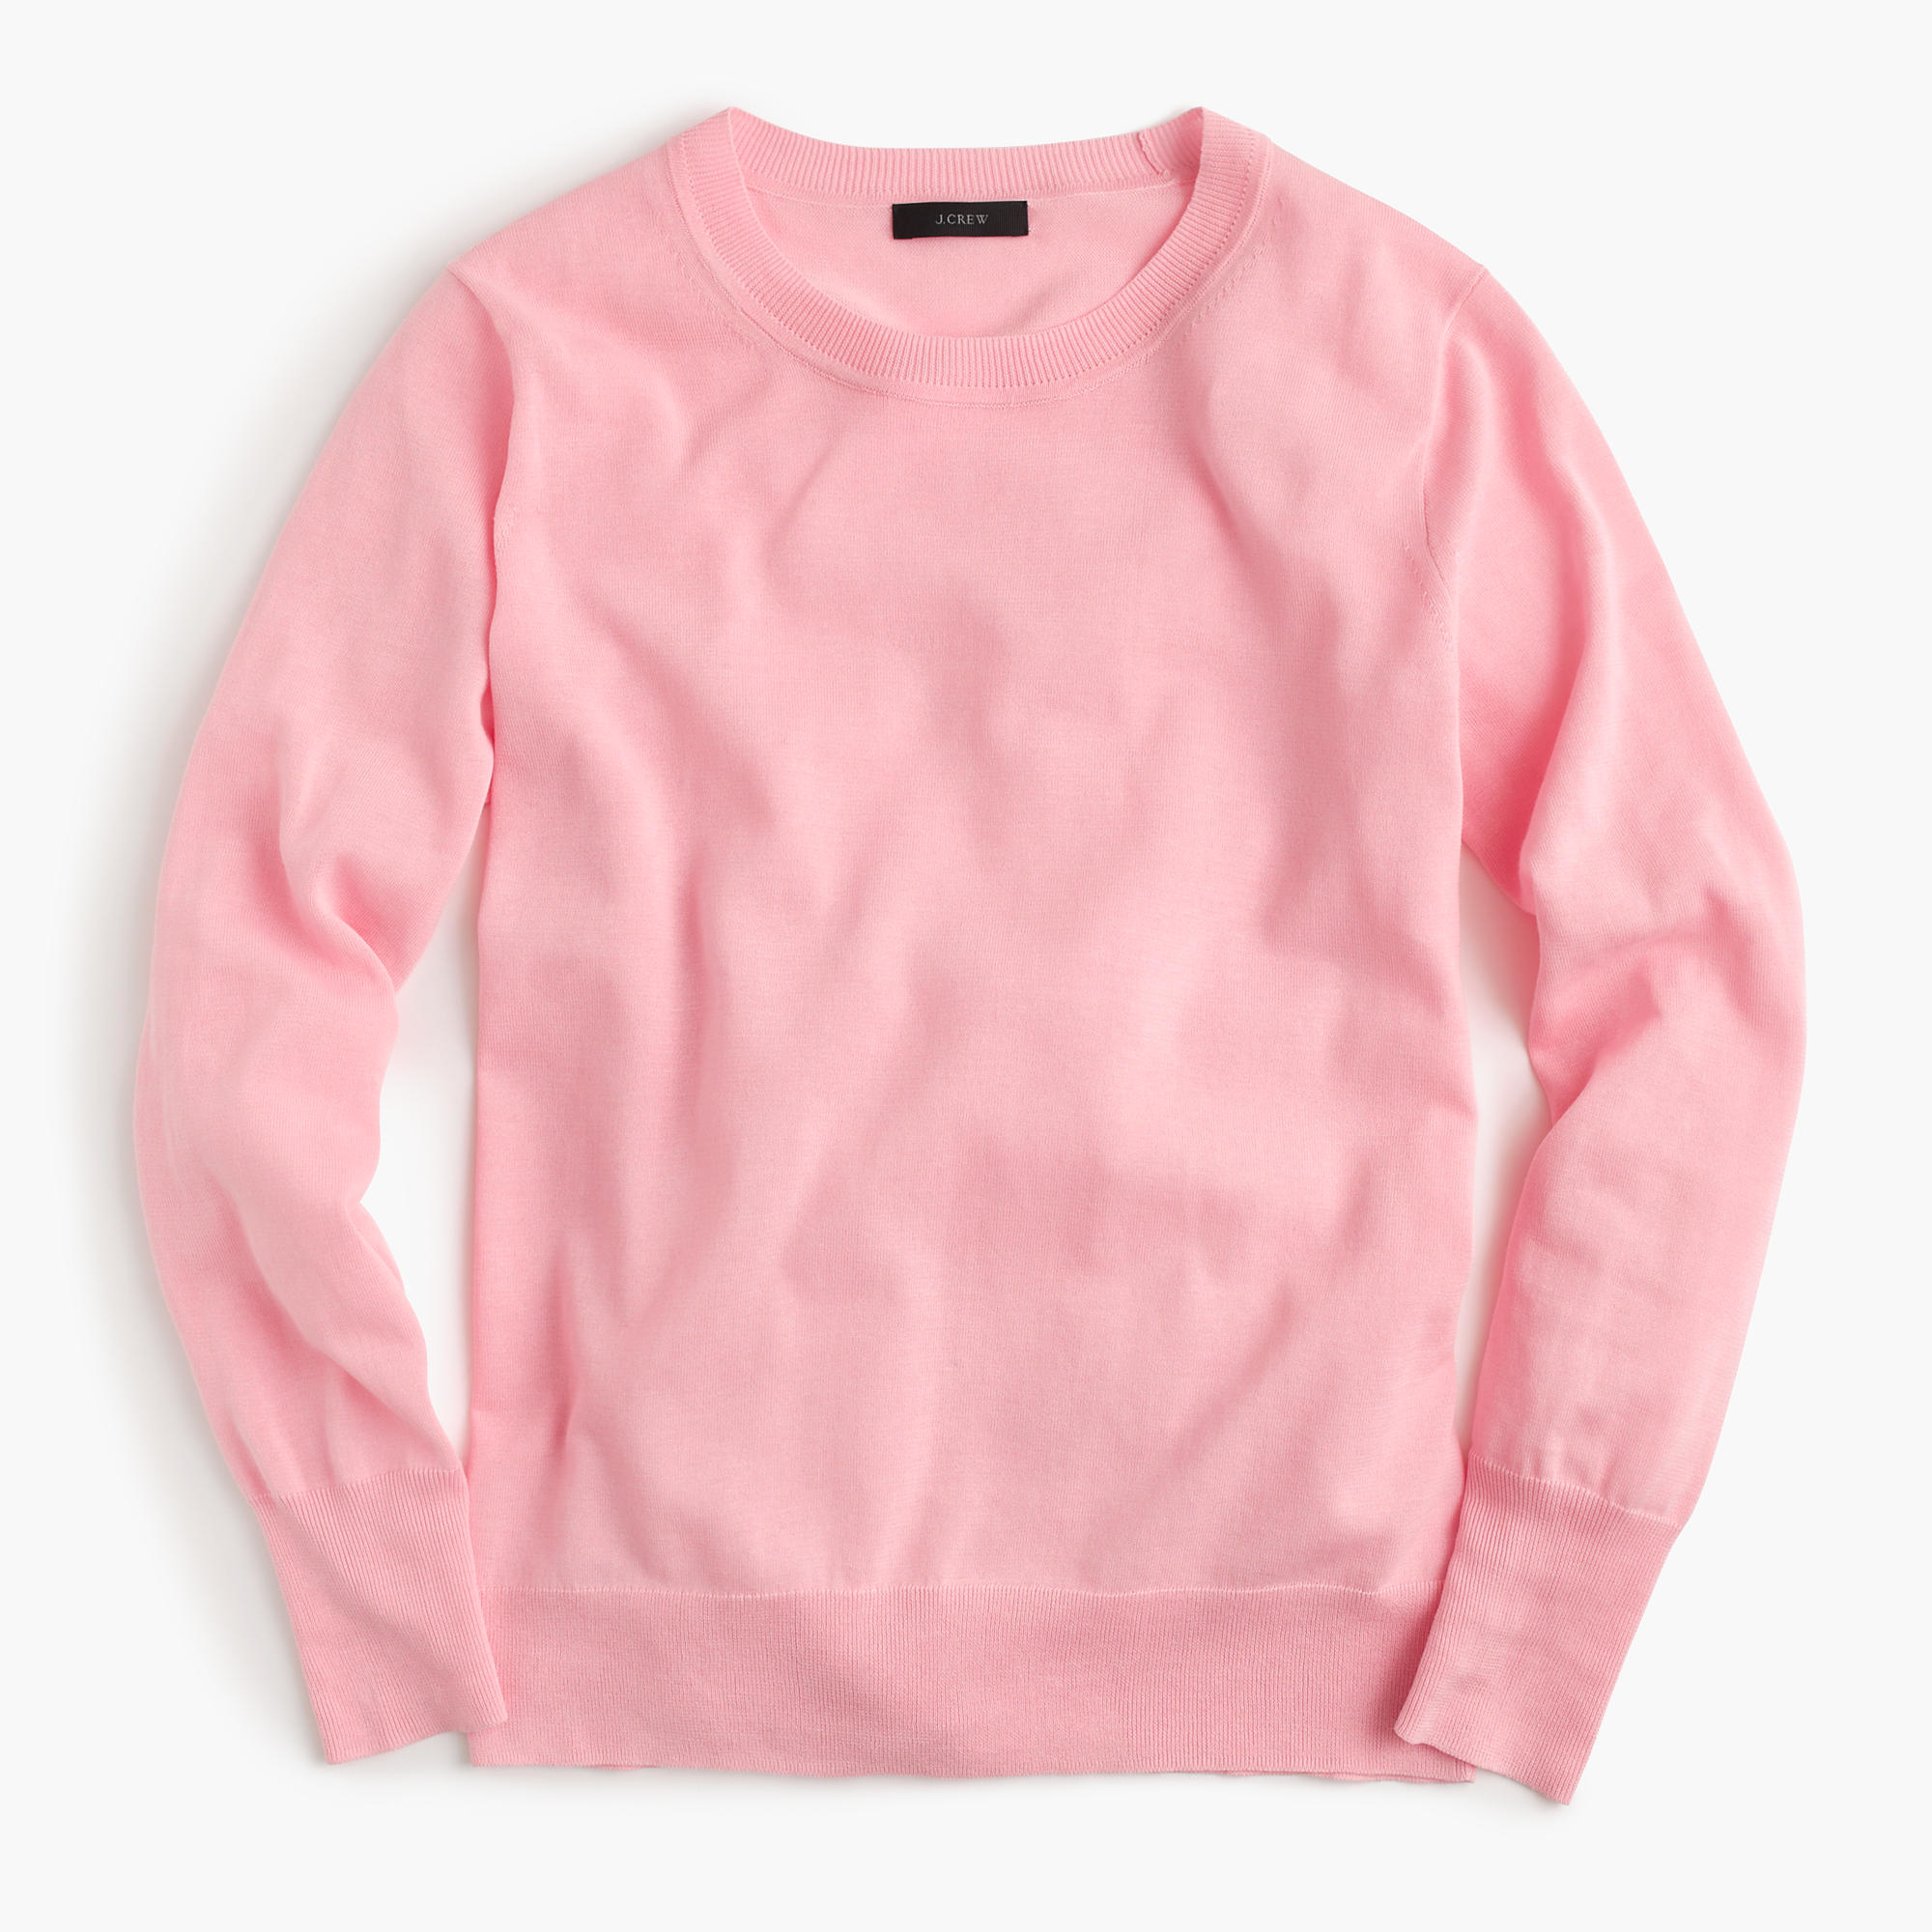 J.crew Summerweight Sweater in Pink | Lyst